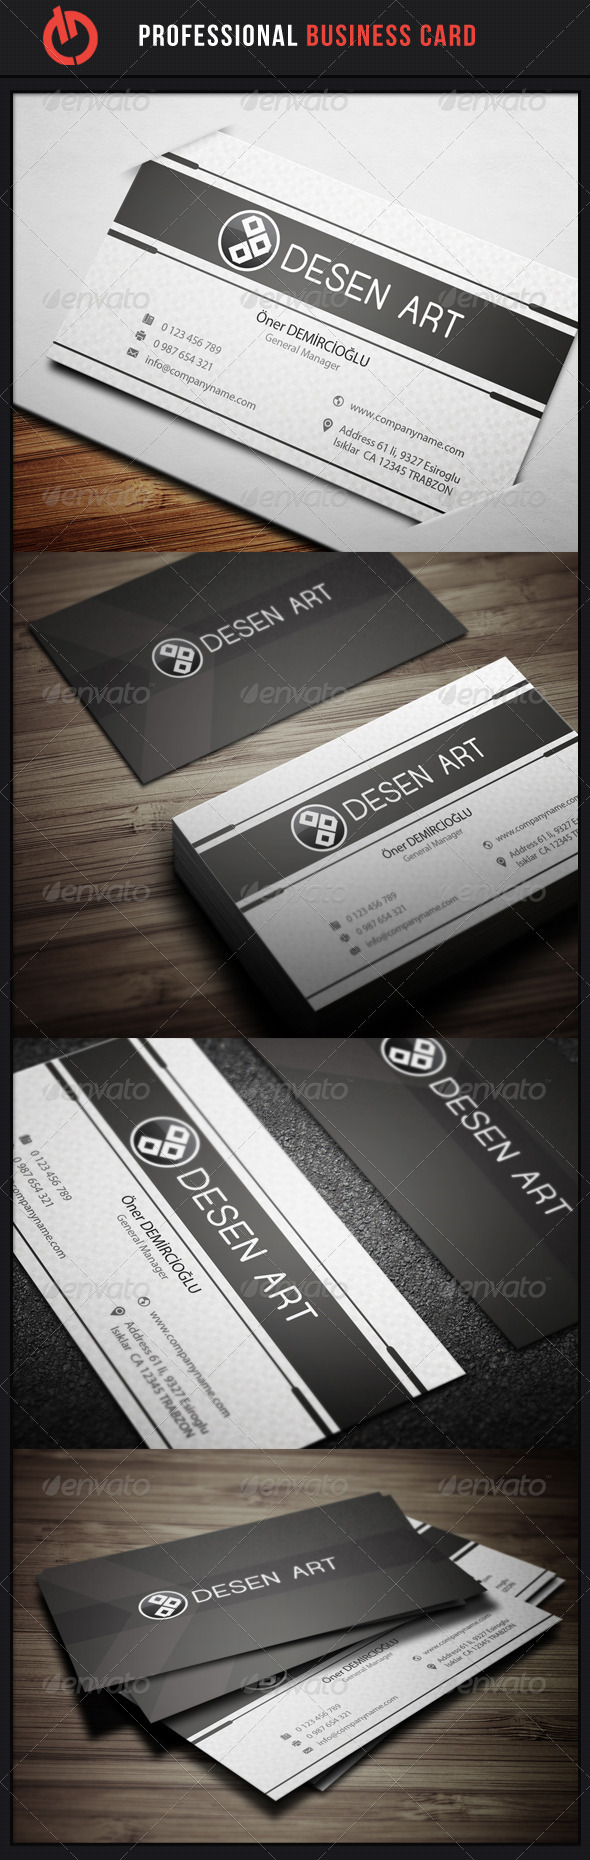 GraphicRiver Professional Business Card 8 3529172